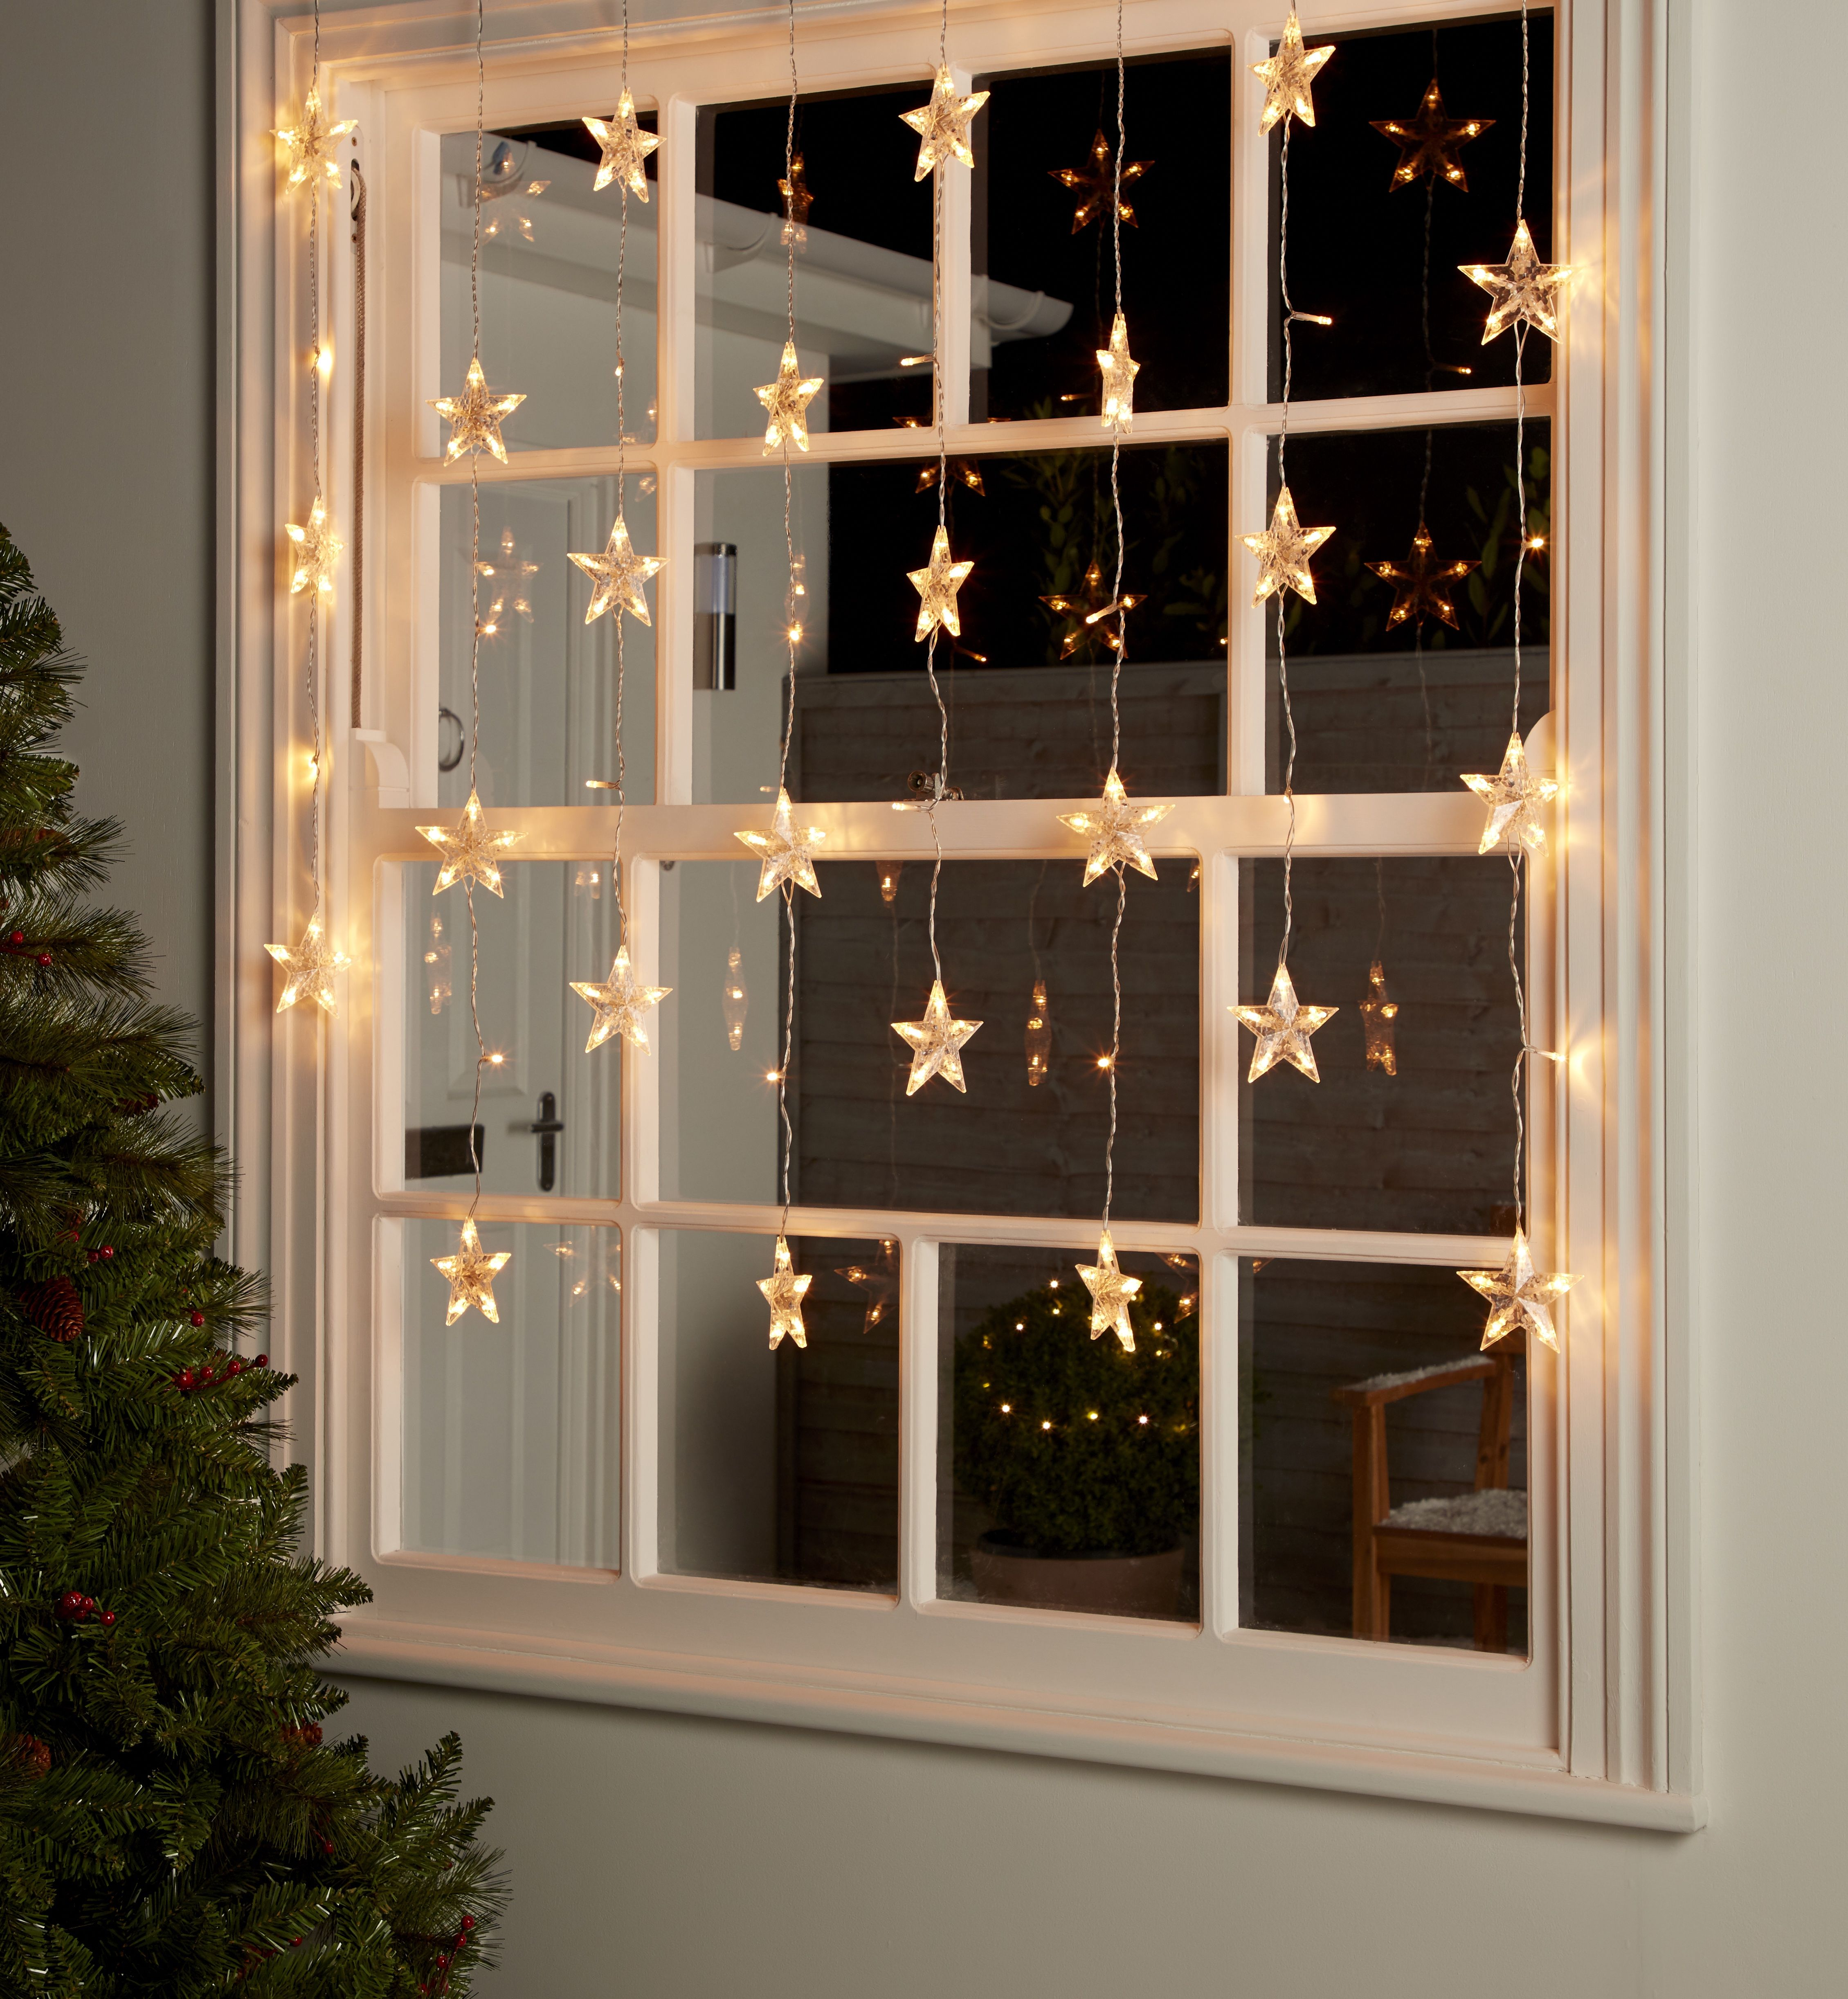 Dress Your Windows To Impress With Our Pretty Led Star Icicle Lights Subtle Yet Effective Christmas Window Decorations Fun Christmas Decorations Christmas Diy